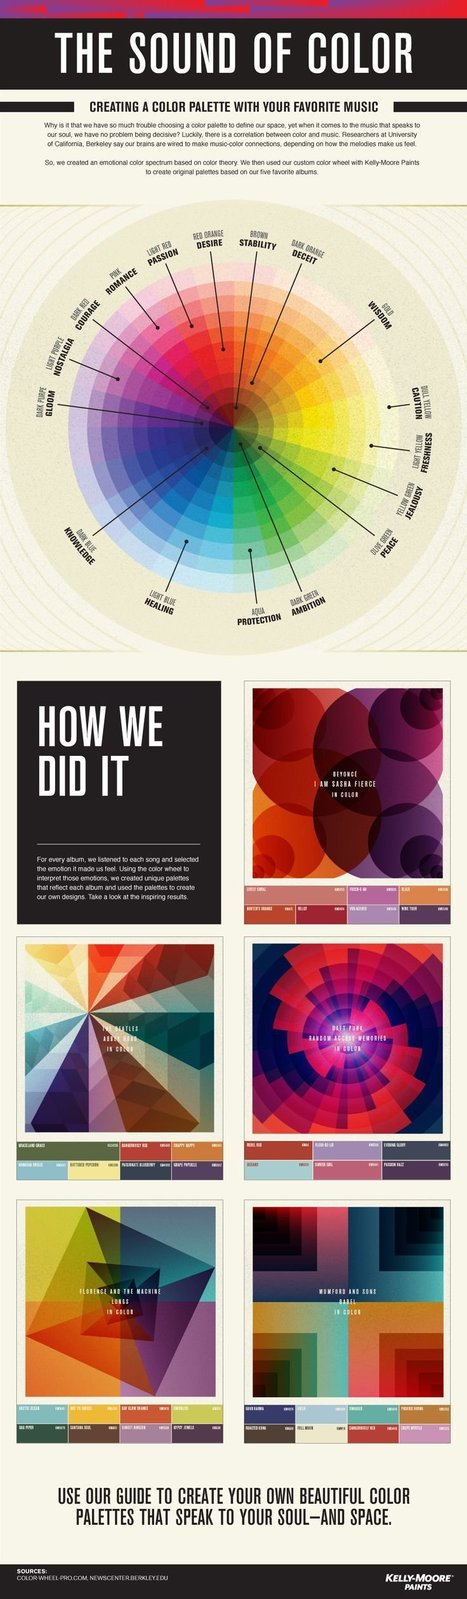 Infographic: The Sound of Color | Communication design | Scoop.it